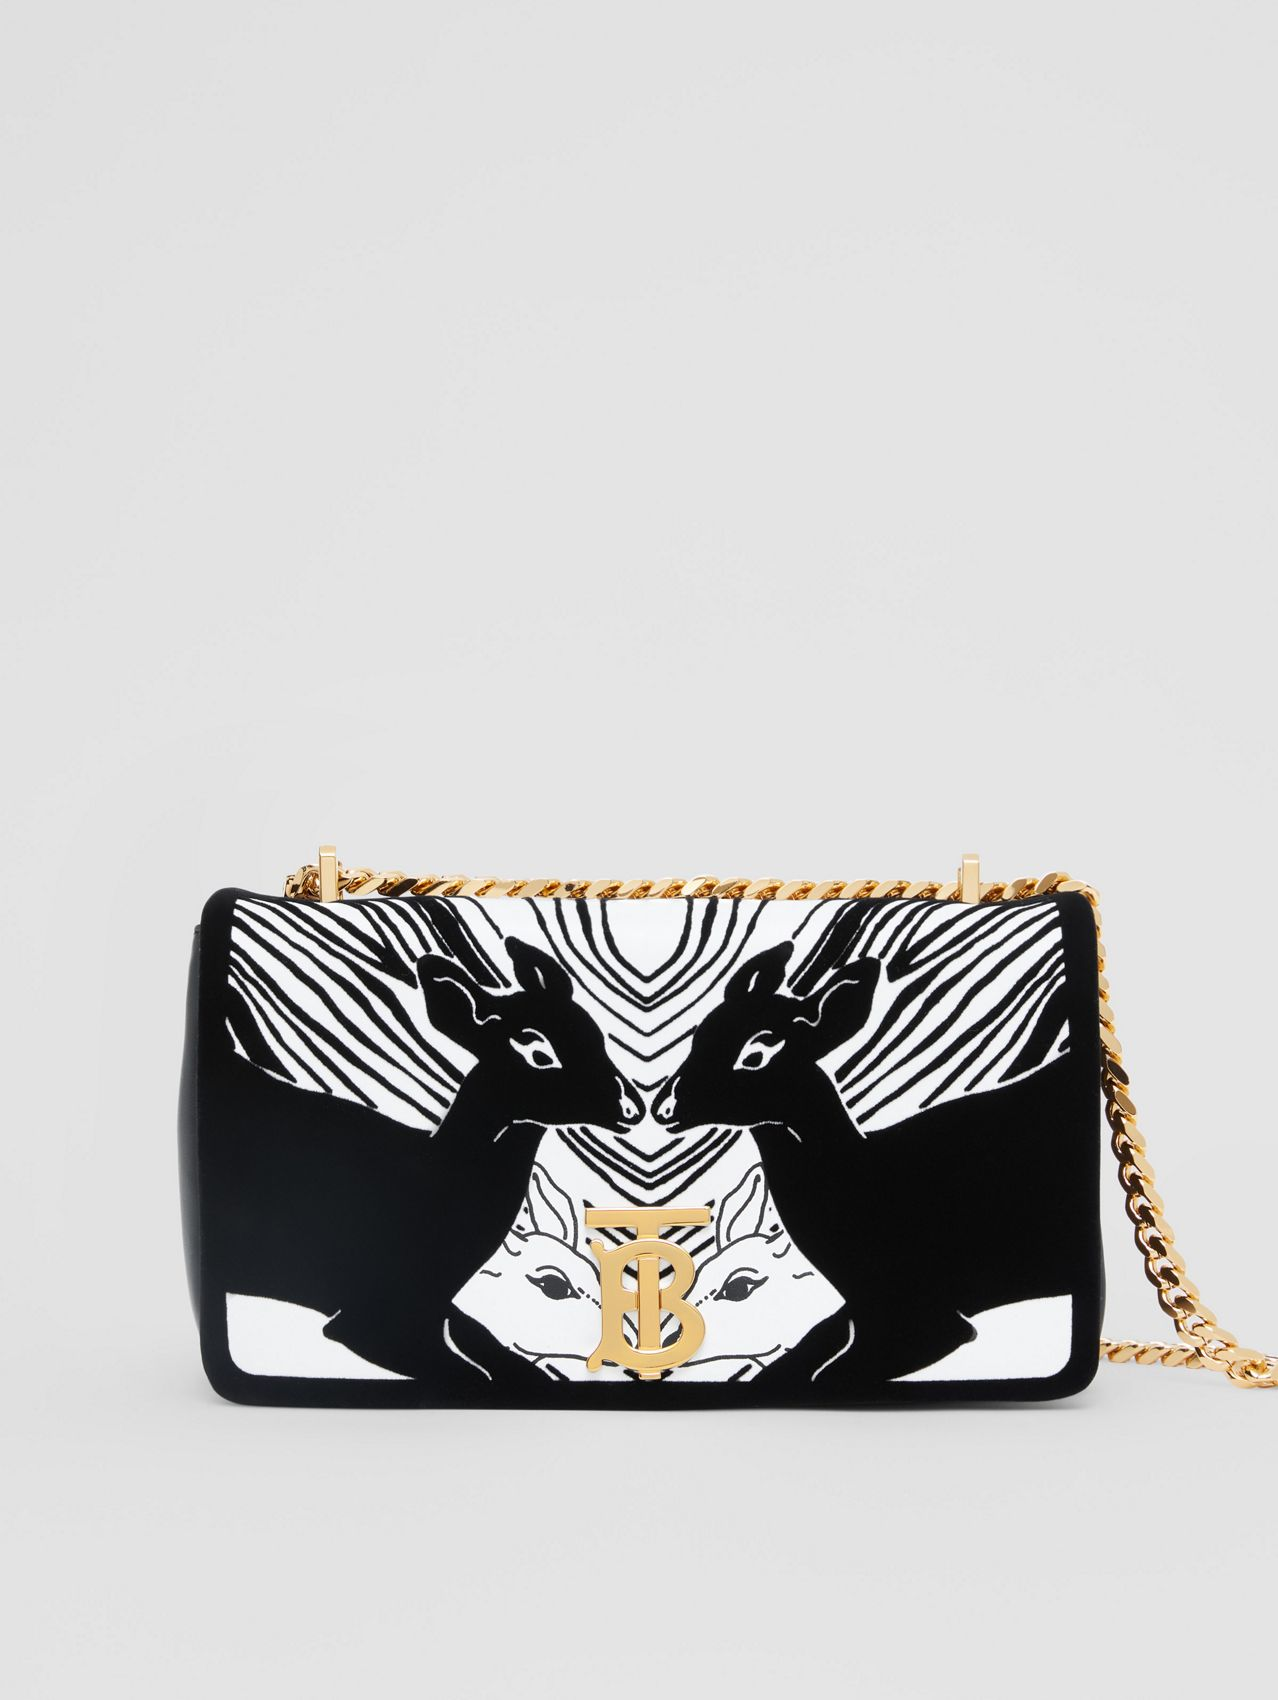 Small Deer Flock Leather Lola Bag in Black/white